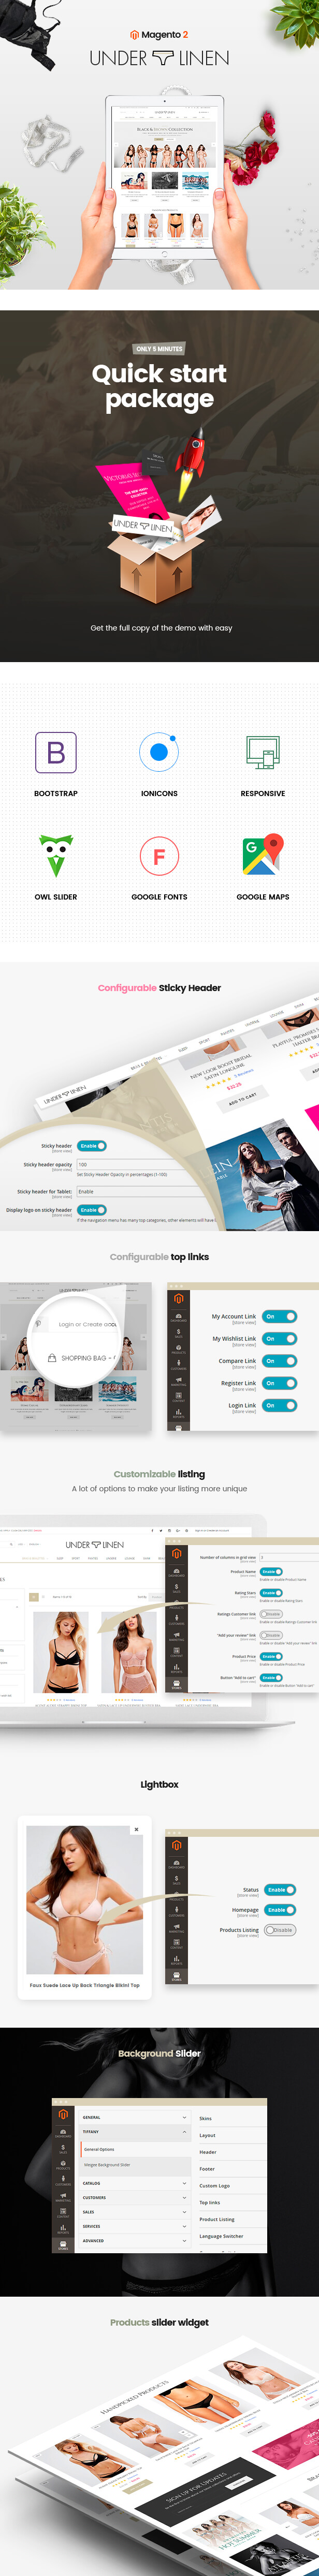 Underlinen - Lingerie Magento 2 and Magento 1 Theme - 3